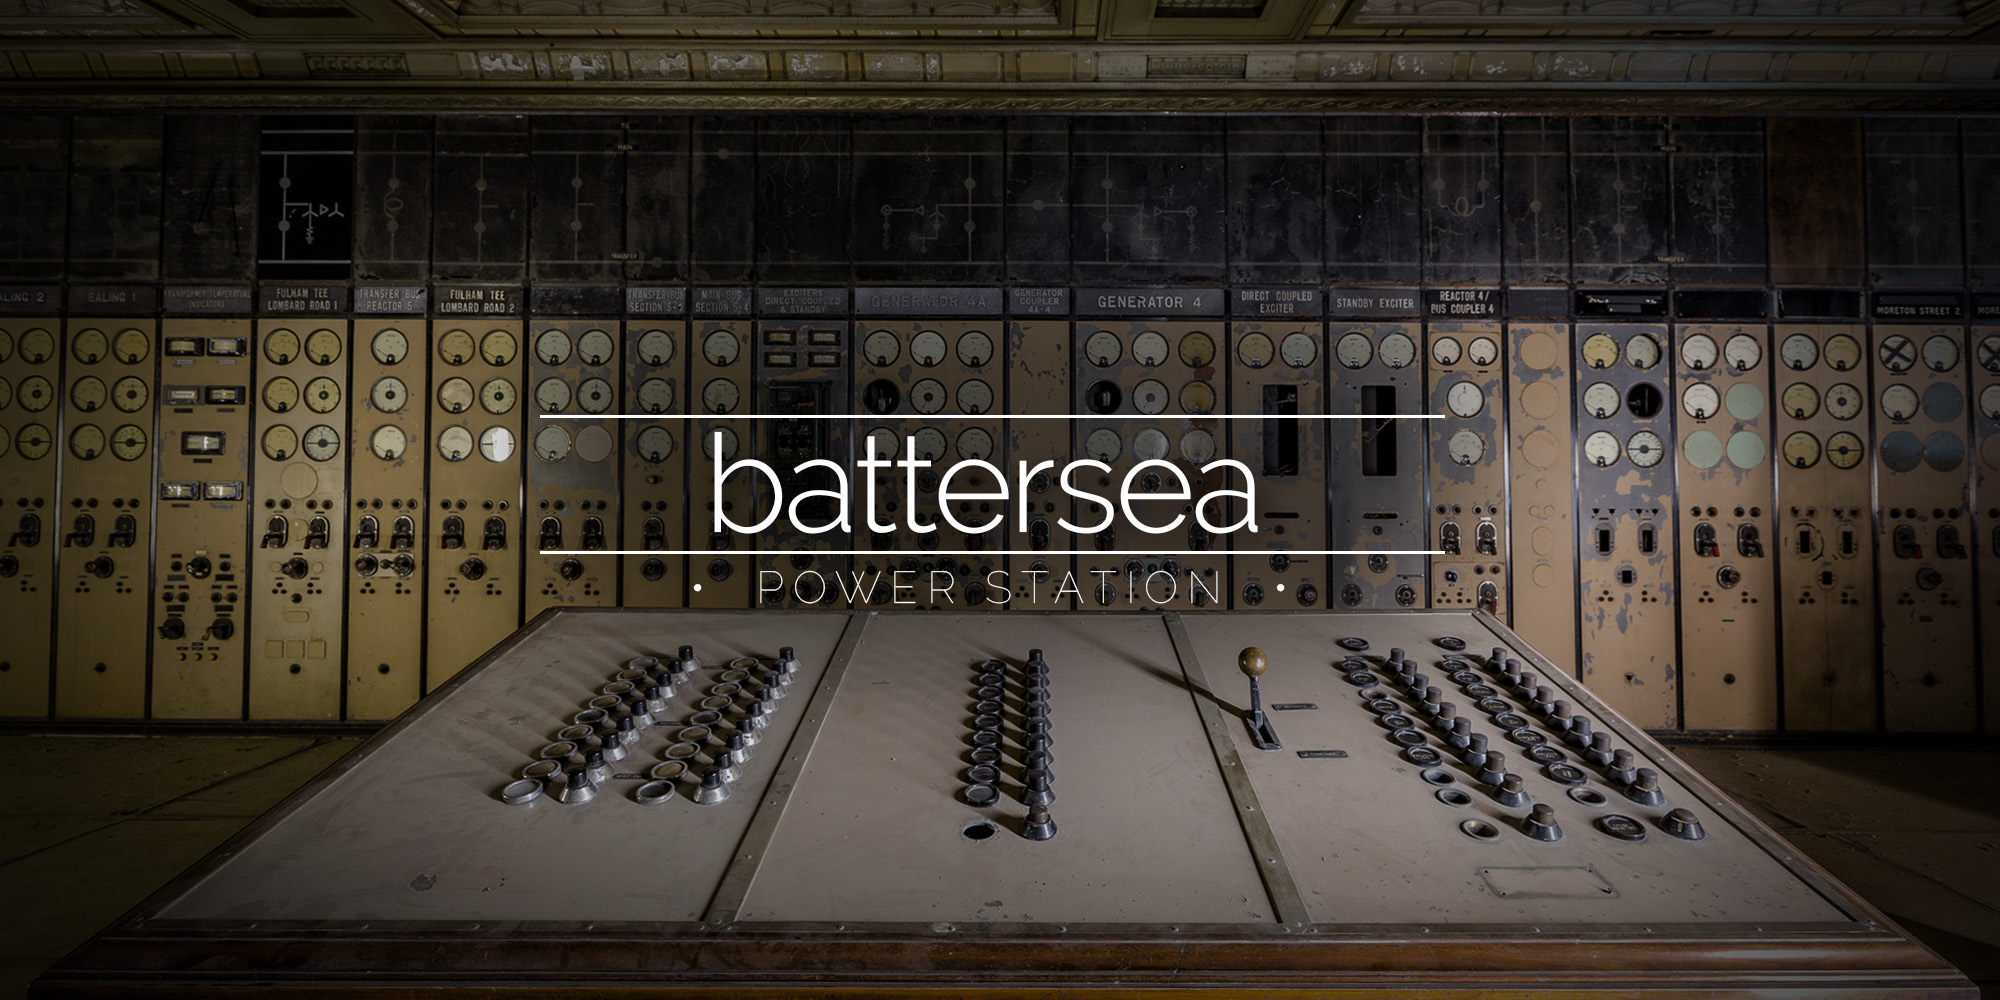 Battersea Power Station, London UK